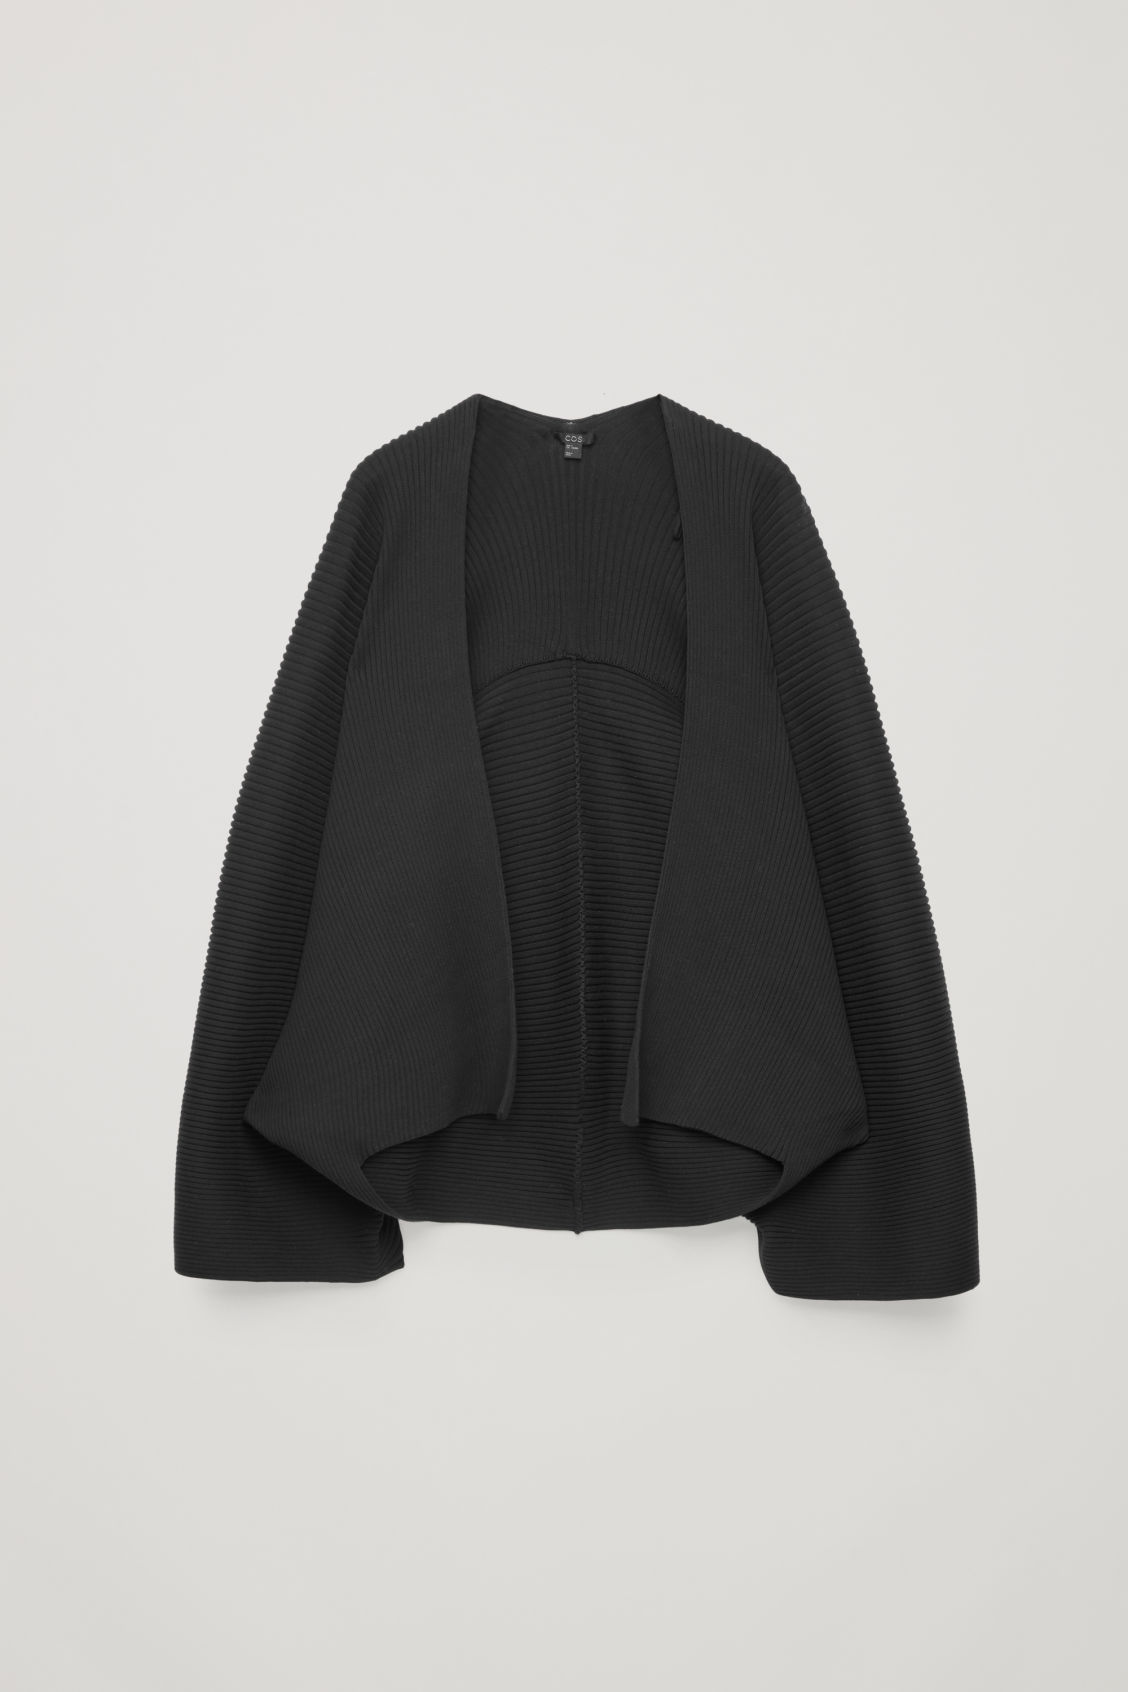 Cocoon Ribbed Cape in Black from COS